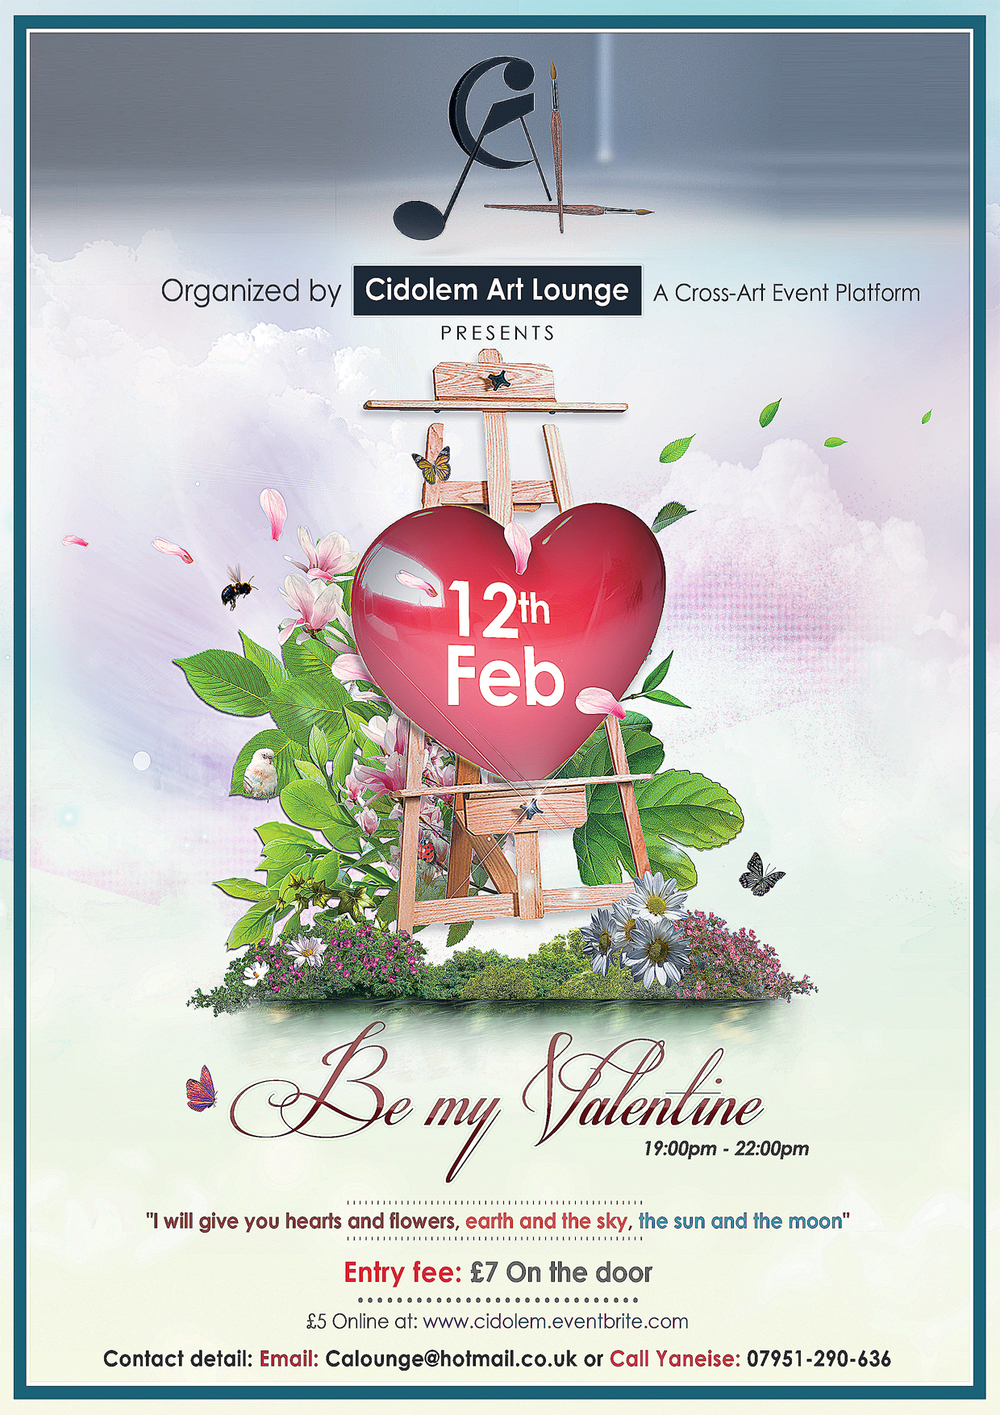 be my valentine-event flyer.jpg